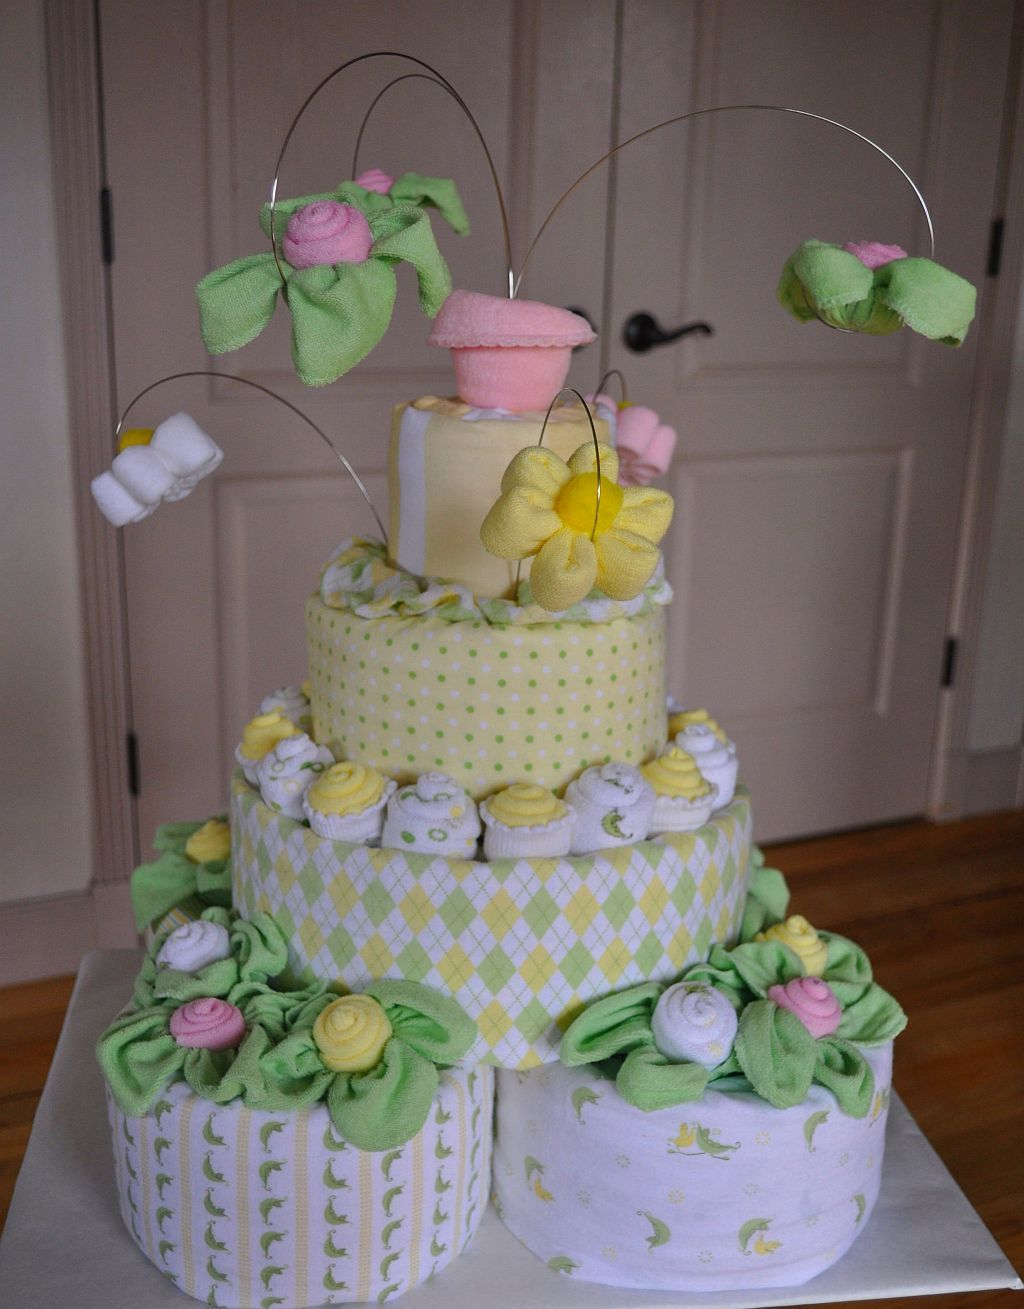 Baby Shower Diaper Cake Instructions Diaper Cake Inspirations For Your Next Baby